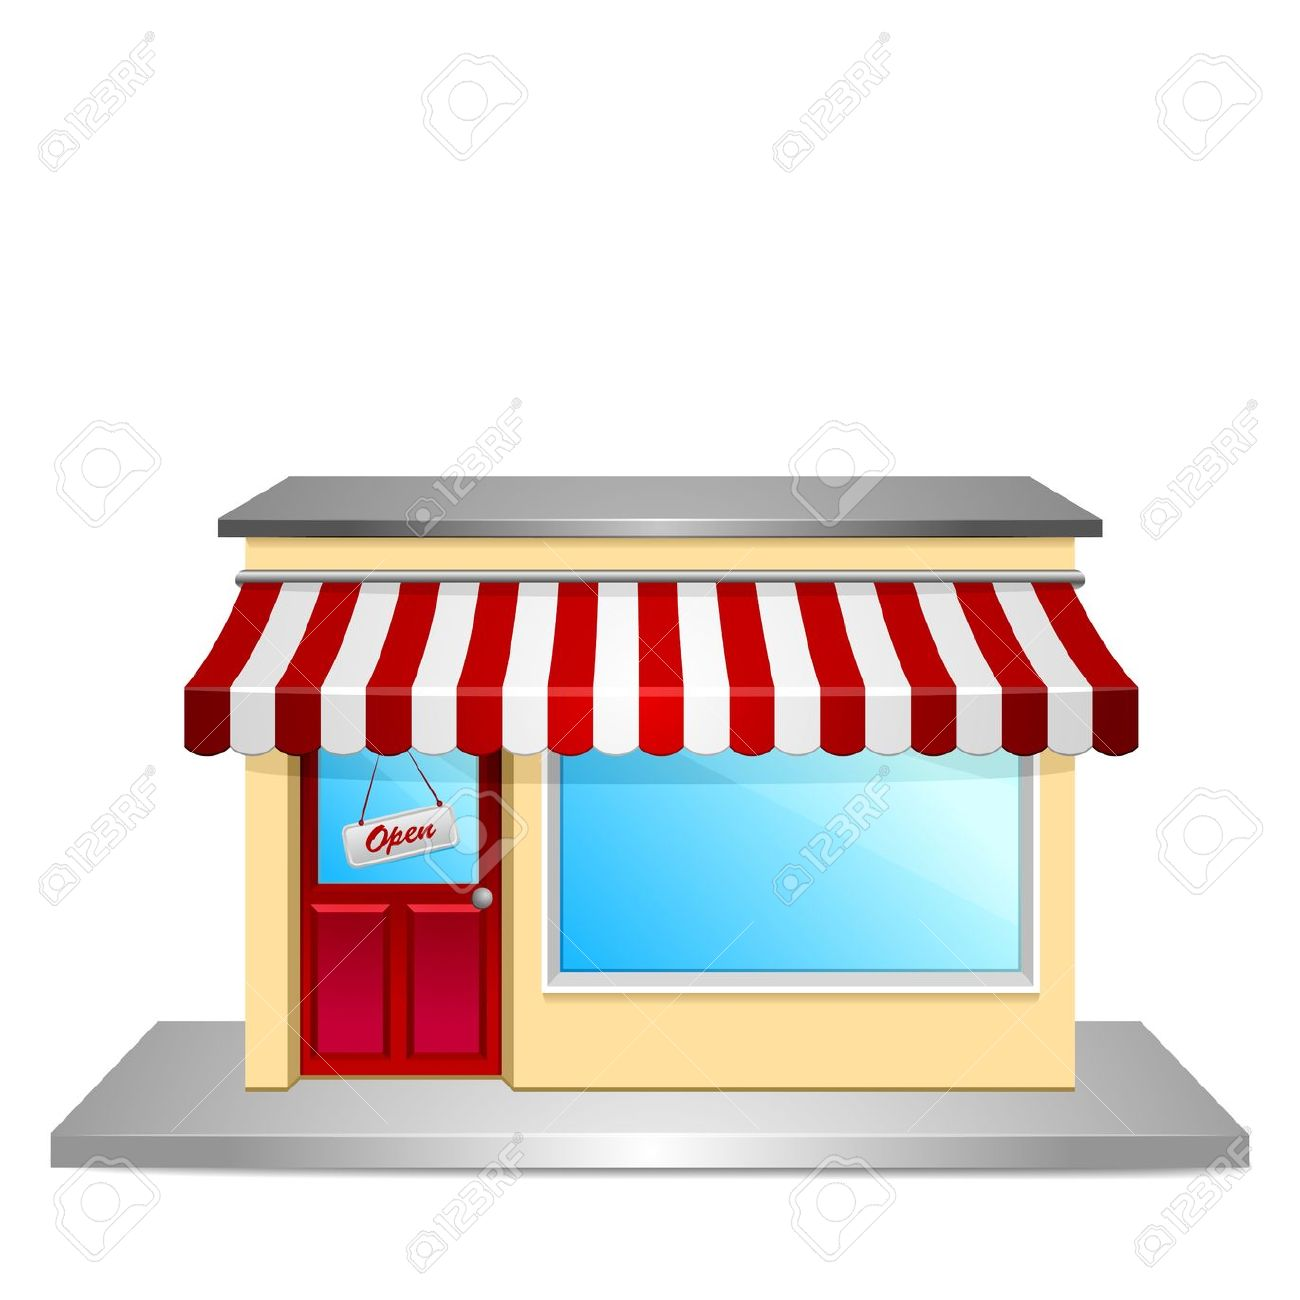 Clipart of a store jpg library 5+ Storefront Clipart | ClipartLook jpg library